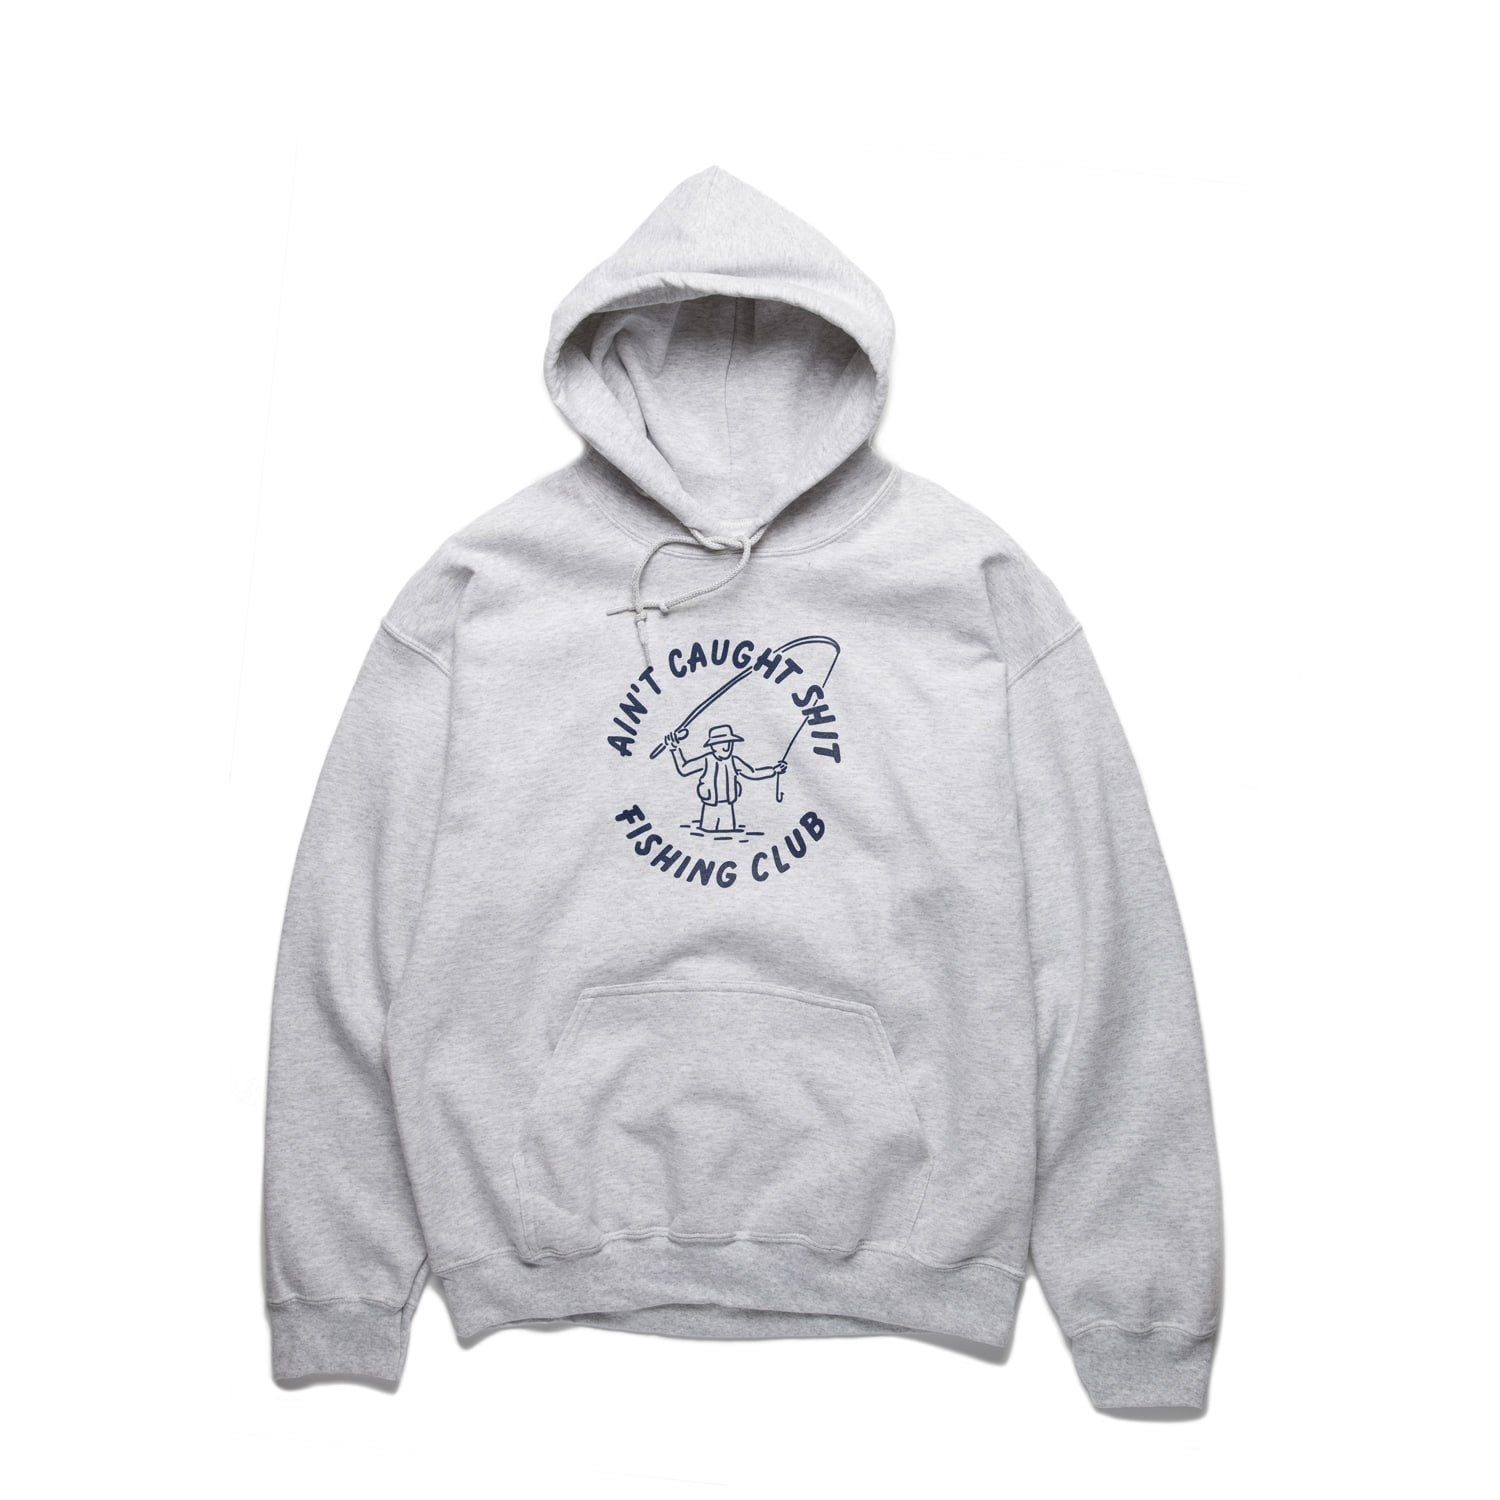 Ain't Caught Shit Fishing Club Hoody